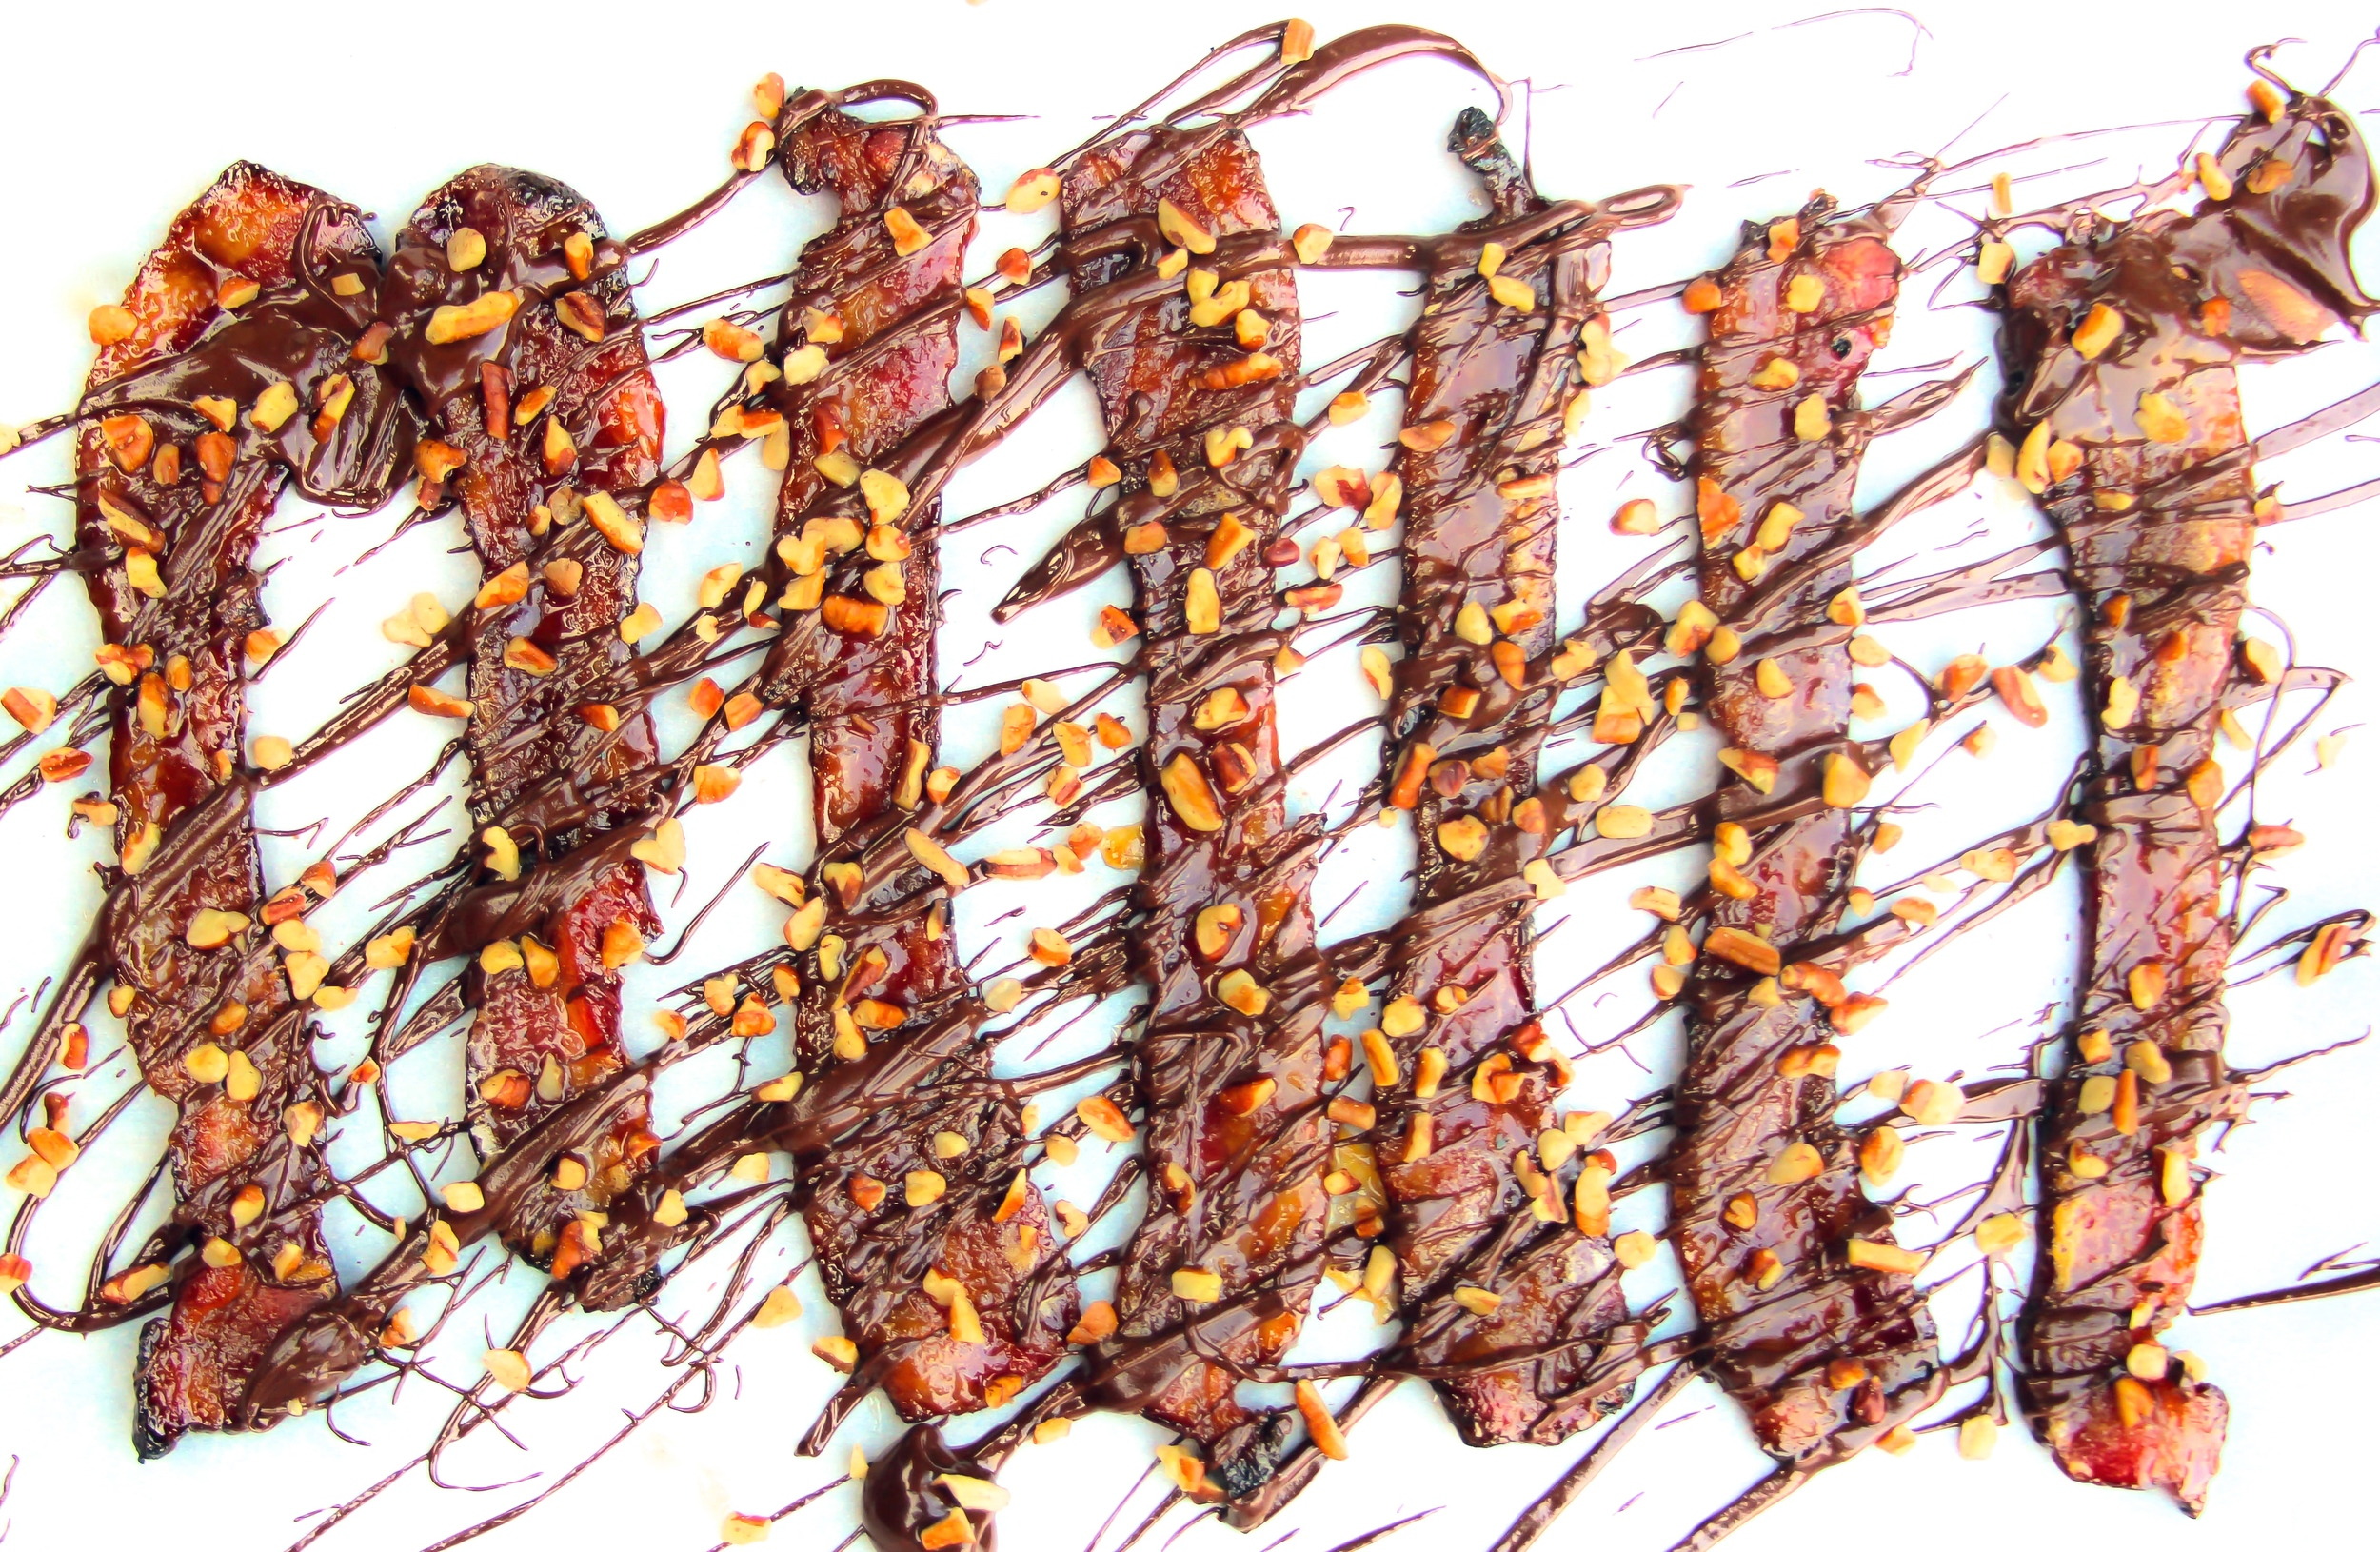 Candied Bacon with Smoked Chocolate and Pecans